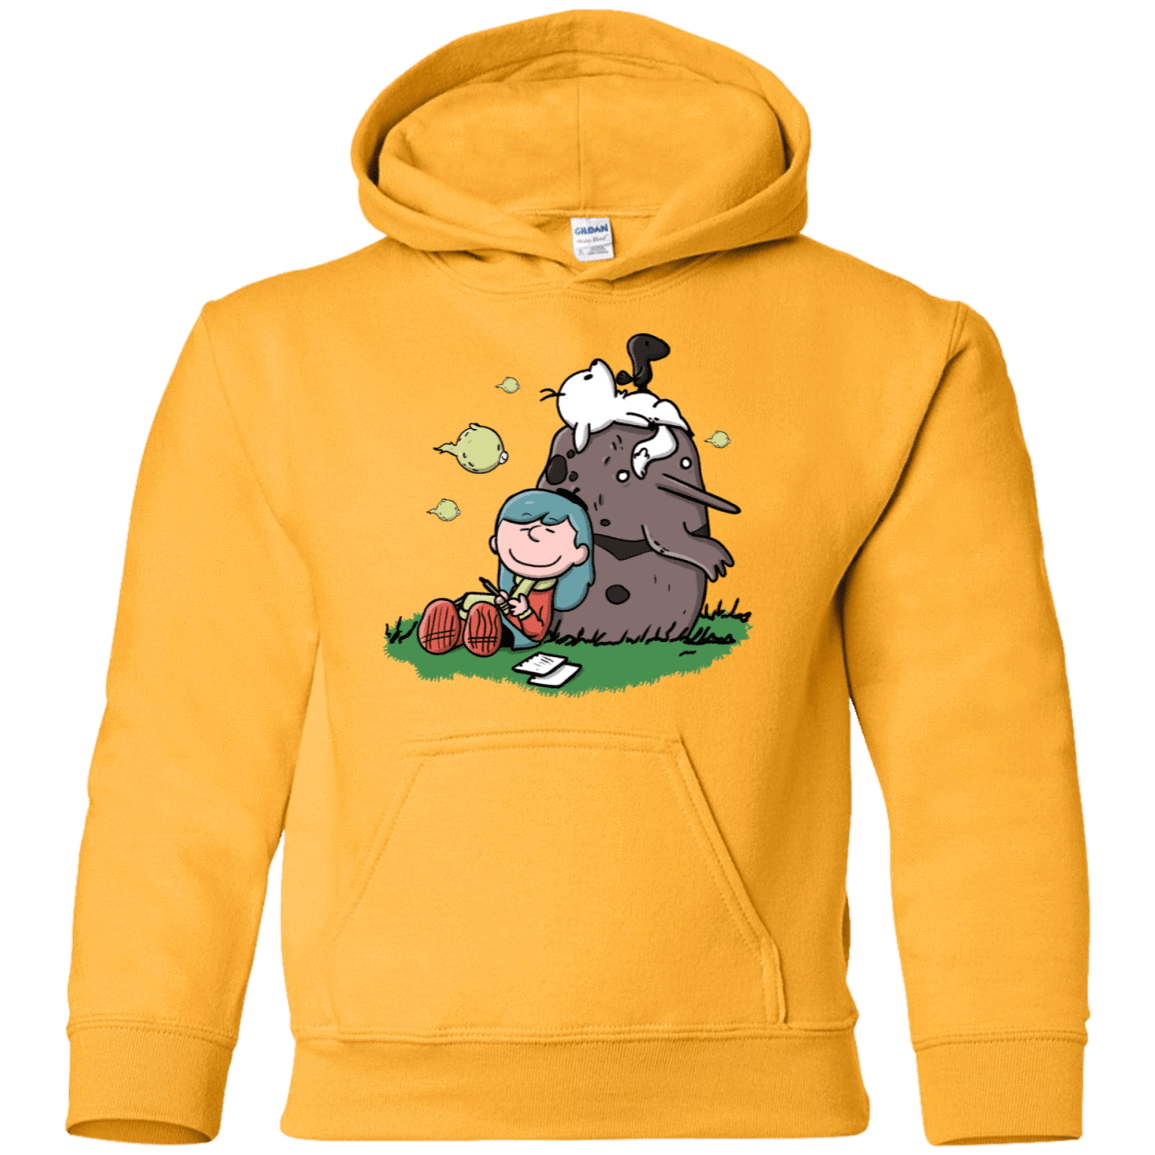 Sweatshirts Gold / YS Hilda Brown Youth Hoodie